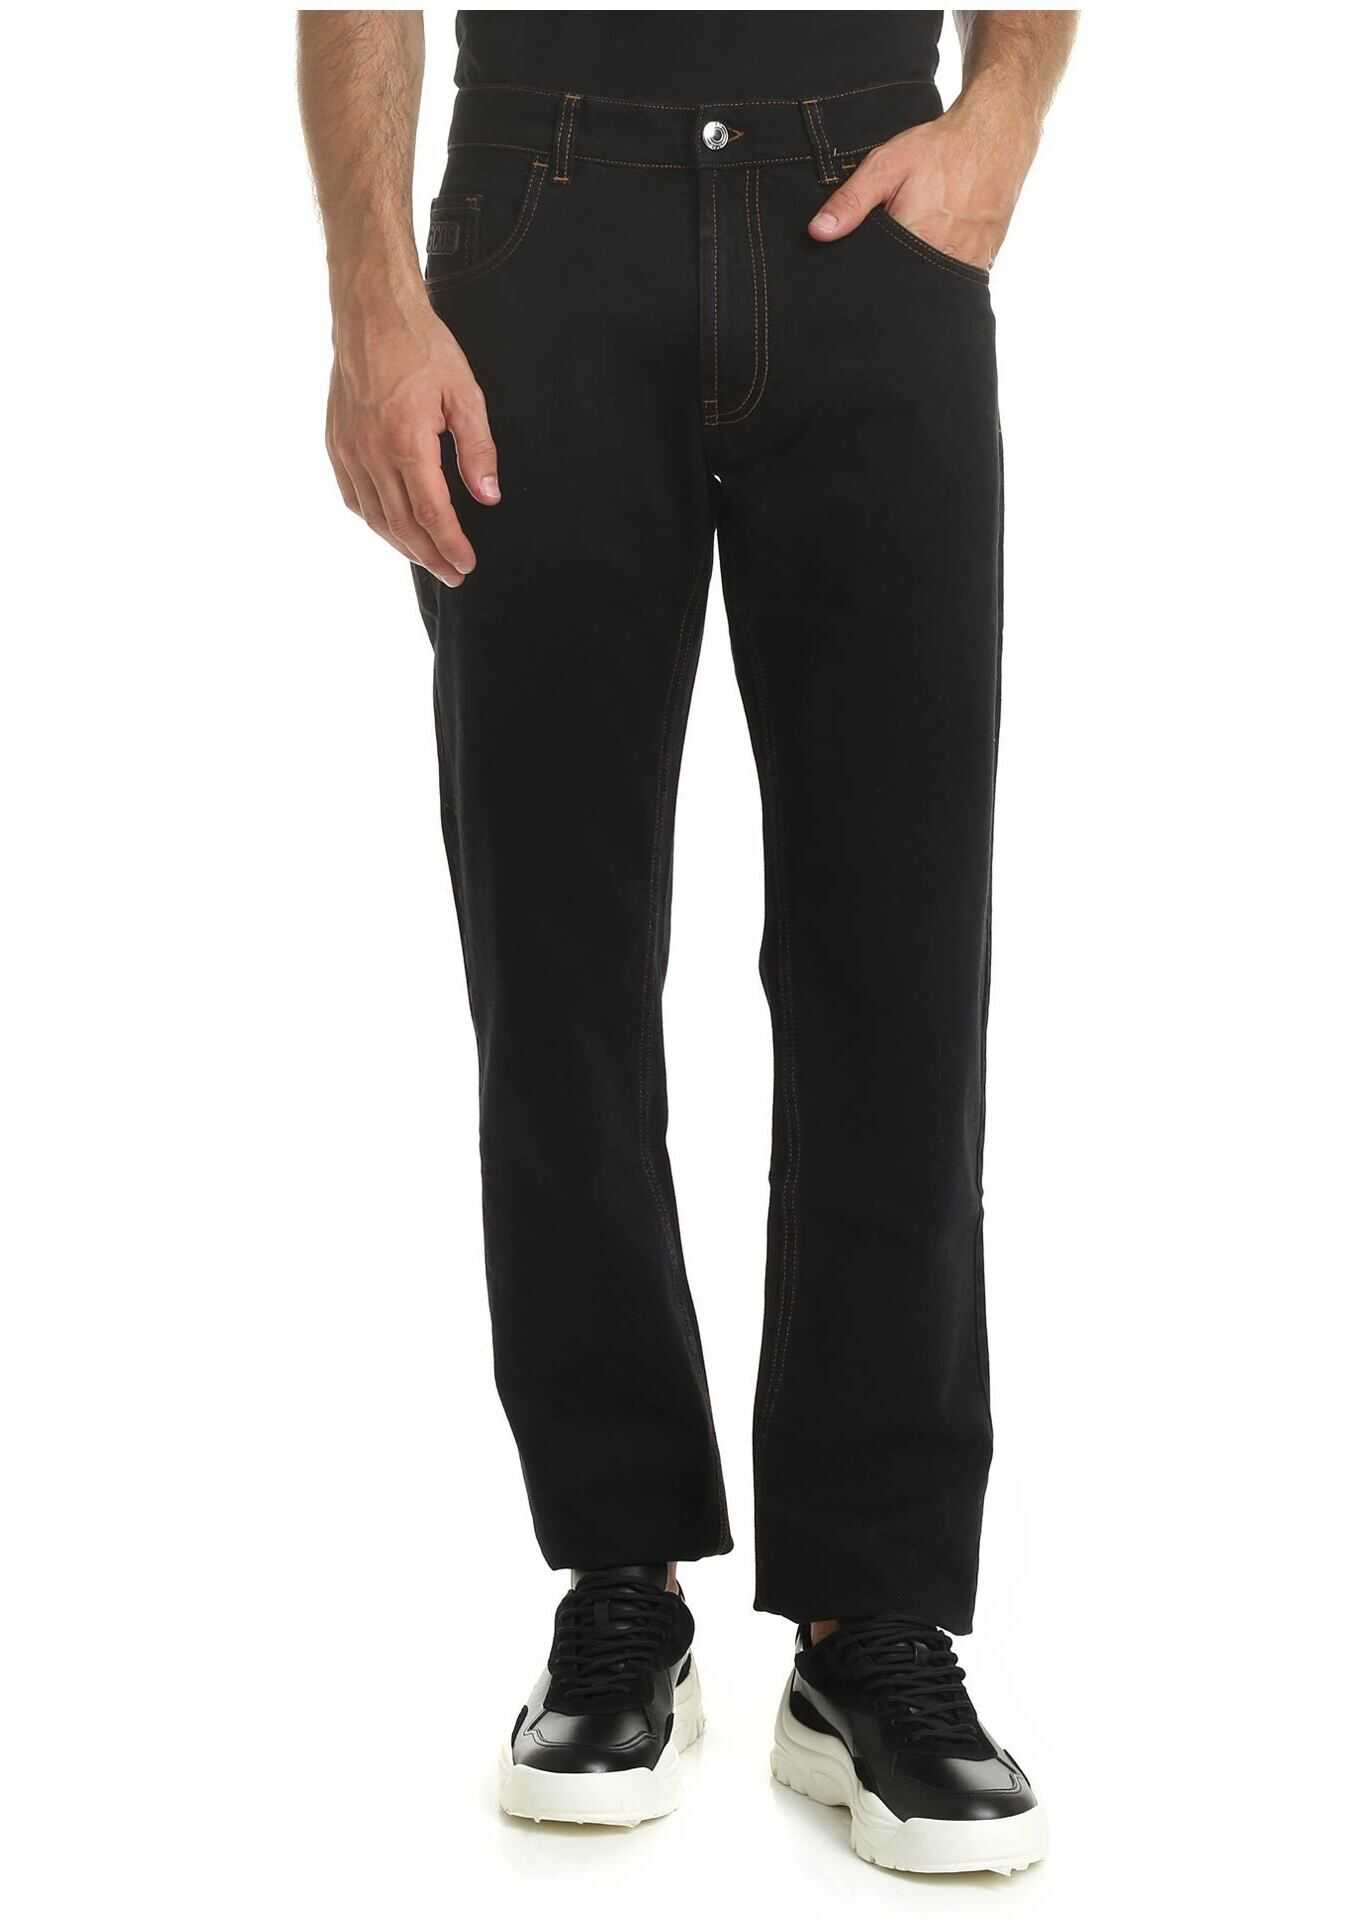 GCDS Black Jeans With Contrasting Stitching Black imagine